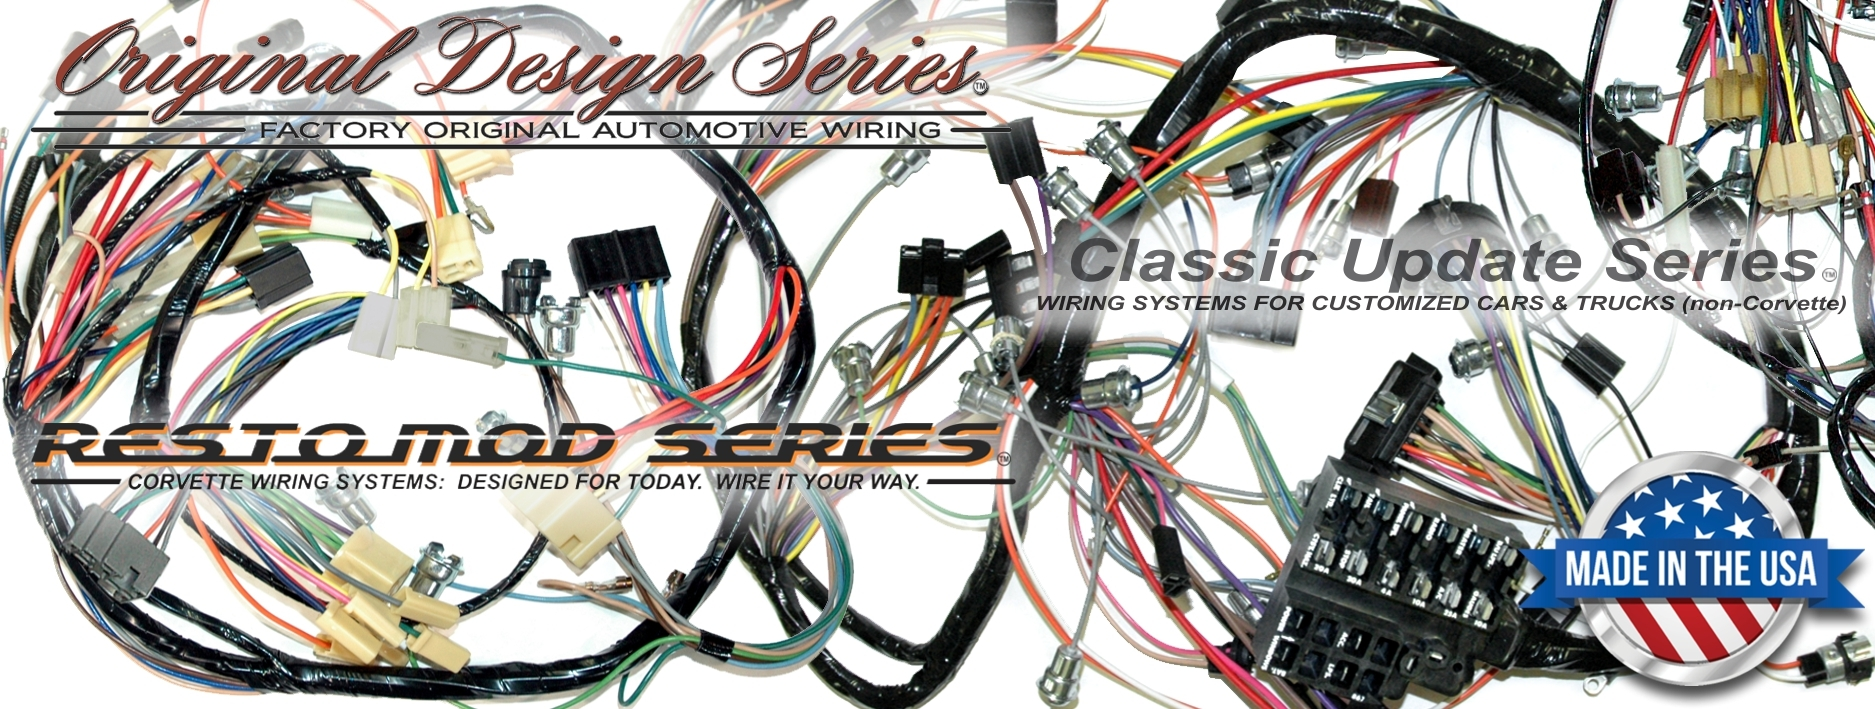 exact oem reproduction wiring harnesses and restomod wiring systems rh lectriclimited com Vehicle Specific Wiring Harnesses Vehicle Specific Wiring Harnesses